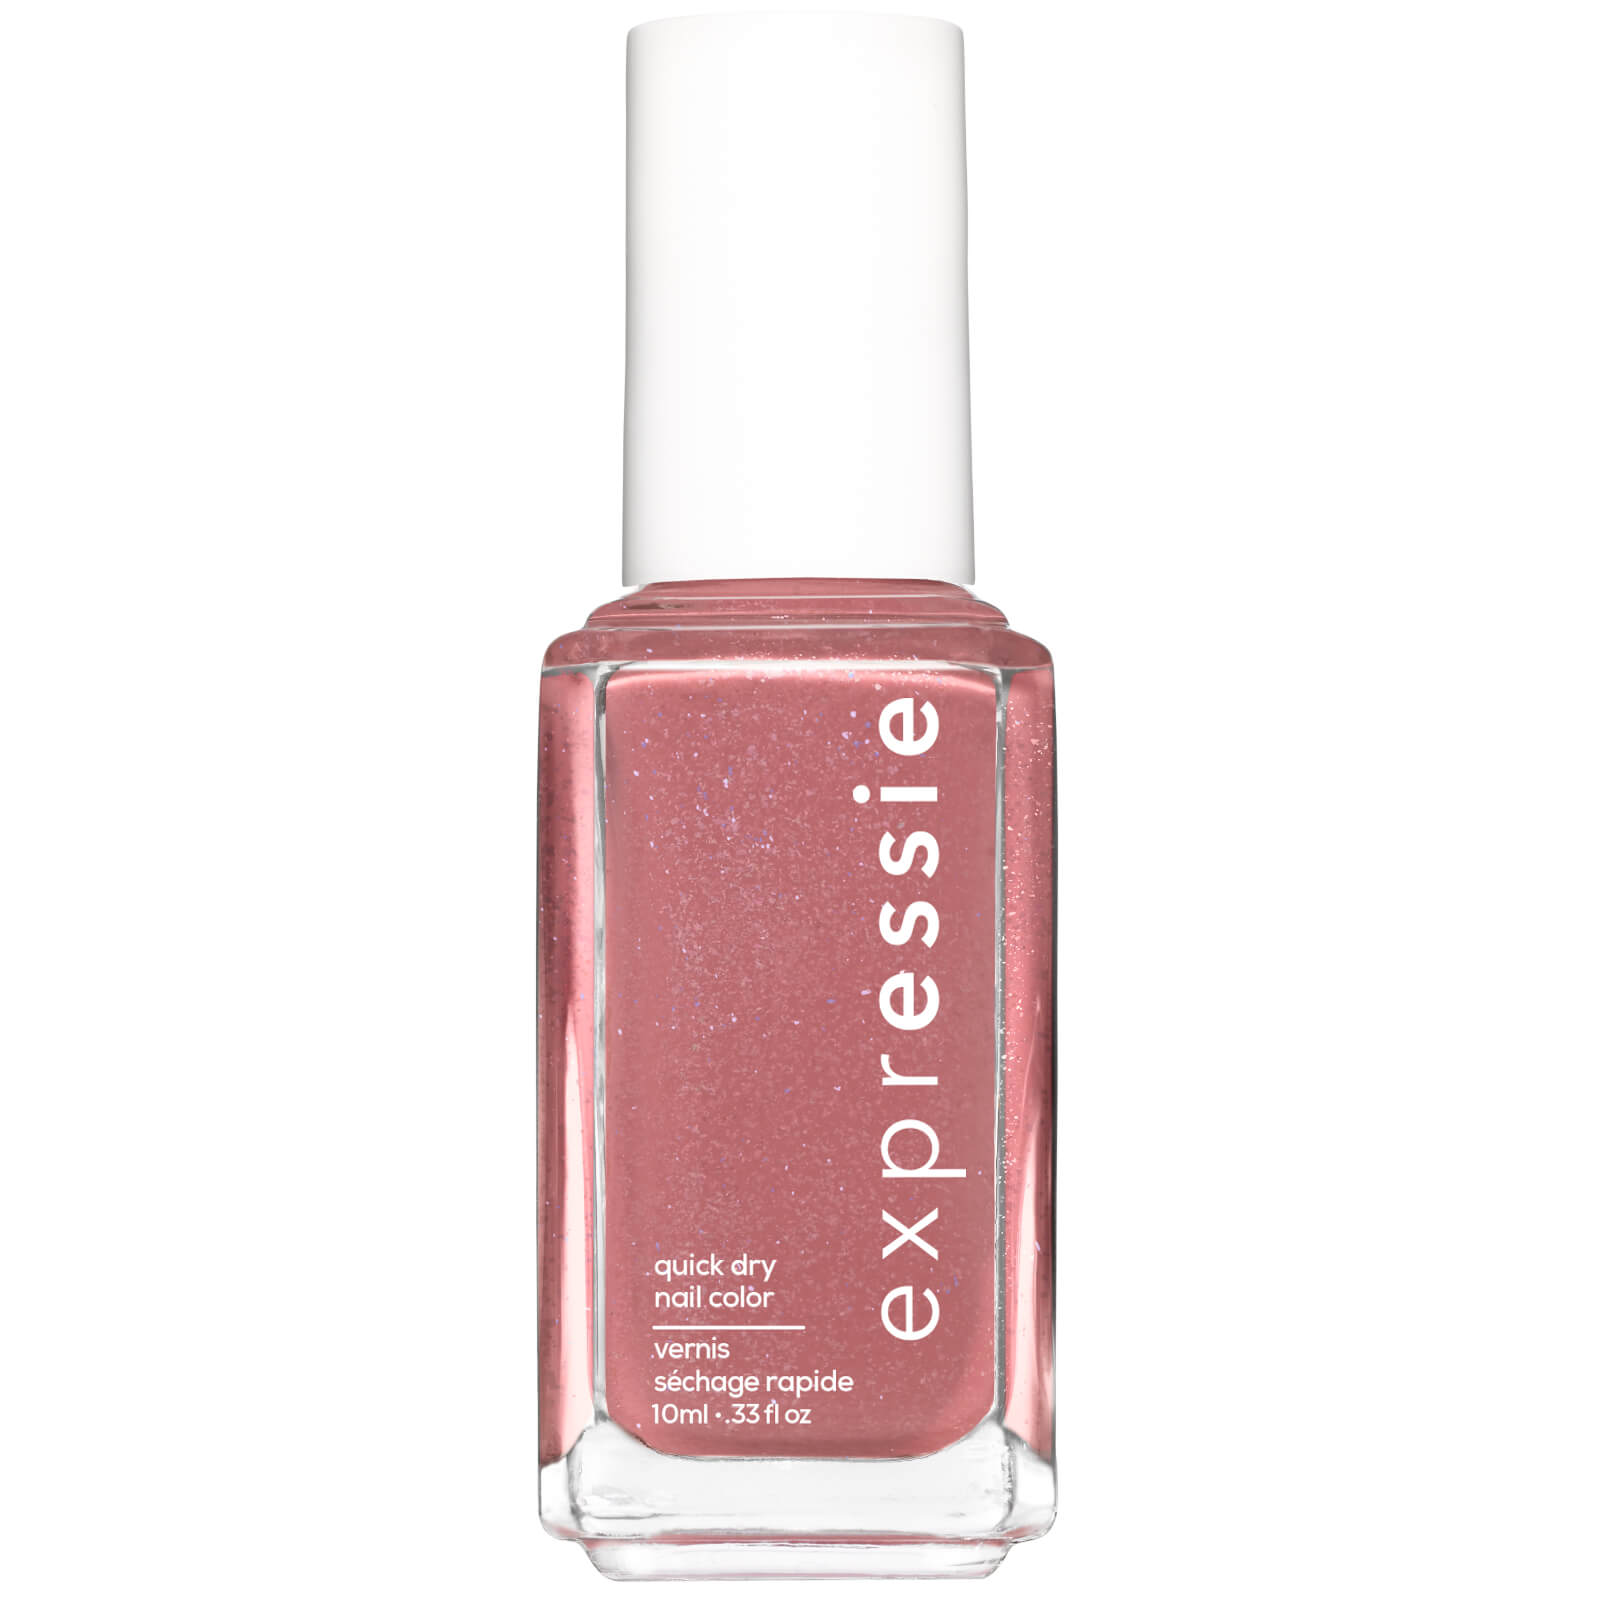 essie Expressie Quick Dry Formula Chip Resistant Nail Polish 10ml (Various Shades) - 30 Trend & Snap